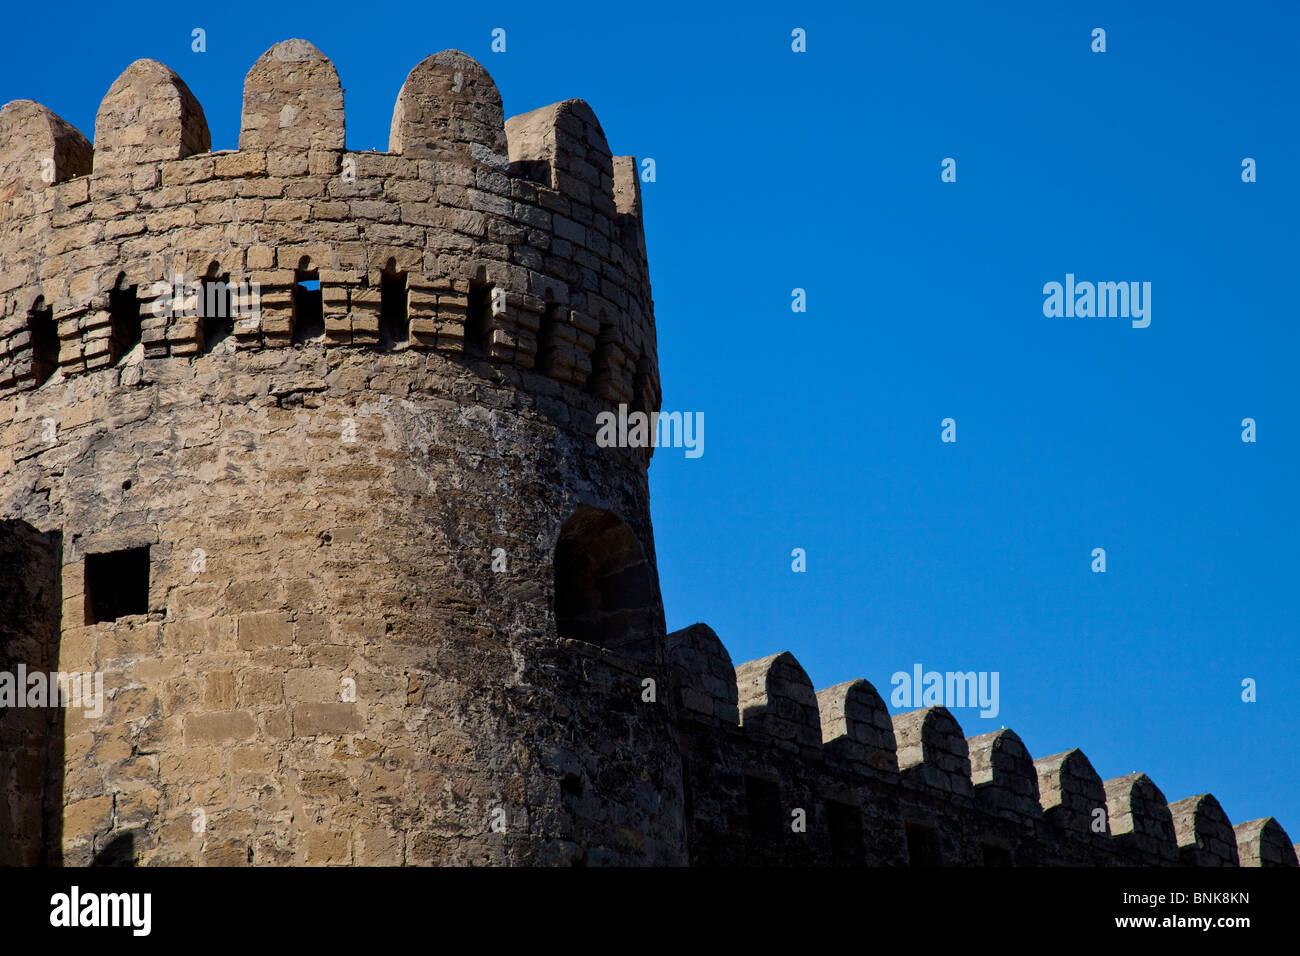 Old city walls, Baku, Azerbaijan - Stock Image